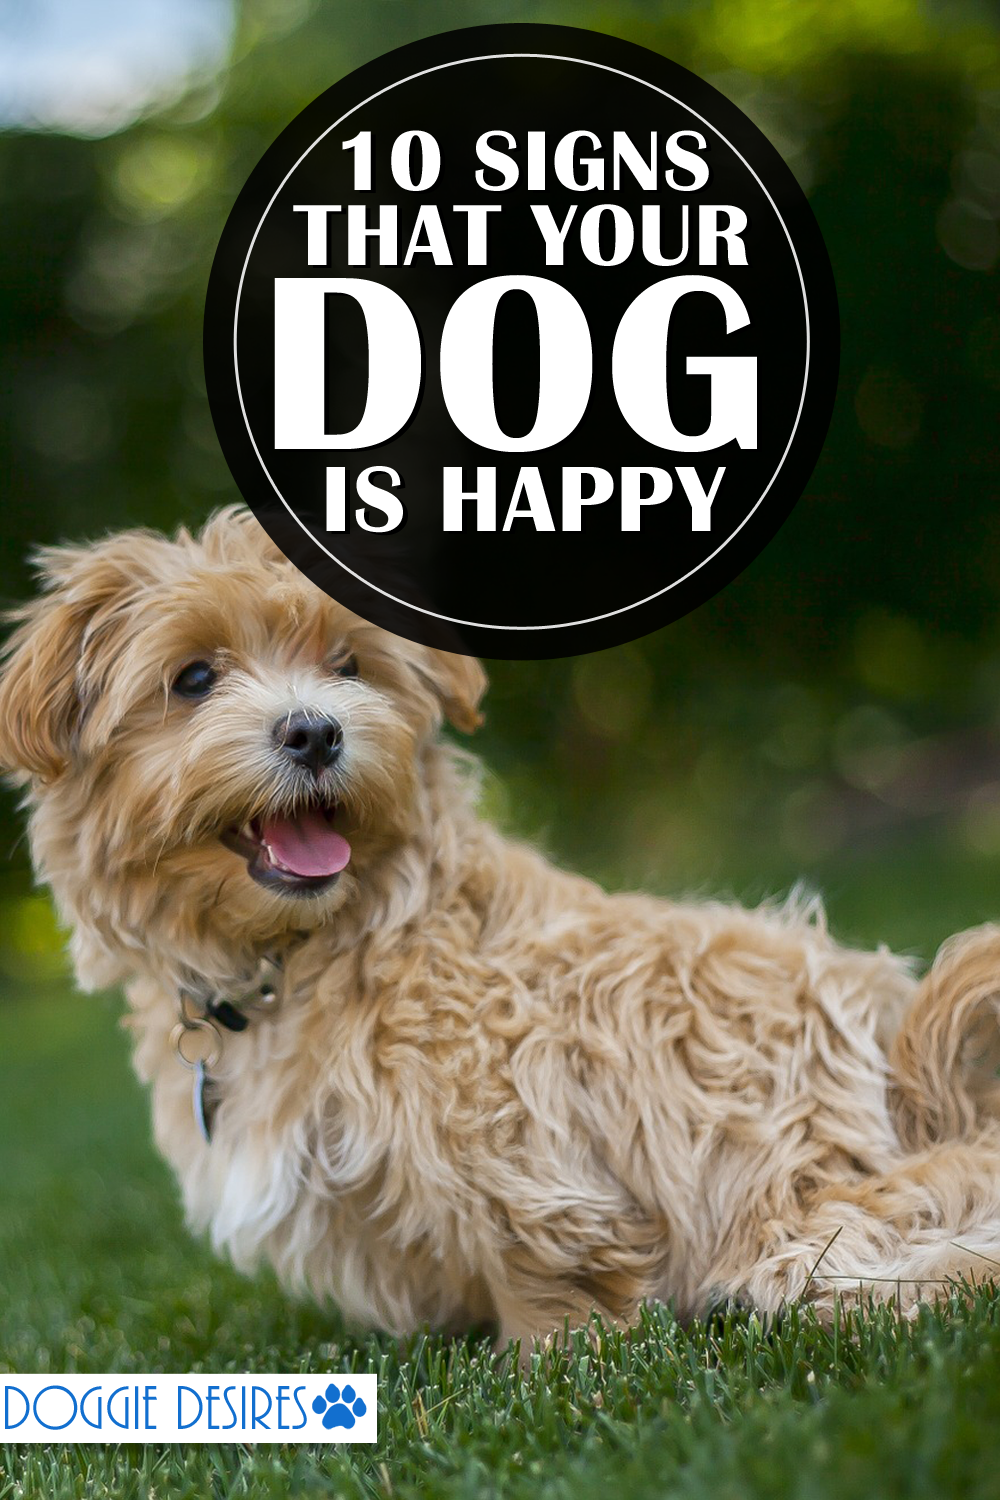 10 Signs That Your Dog Is Happy Dogs, Happy dogs, Dog care